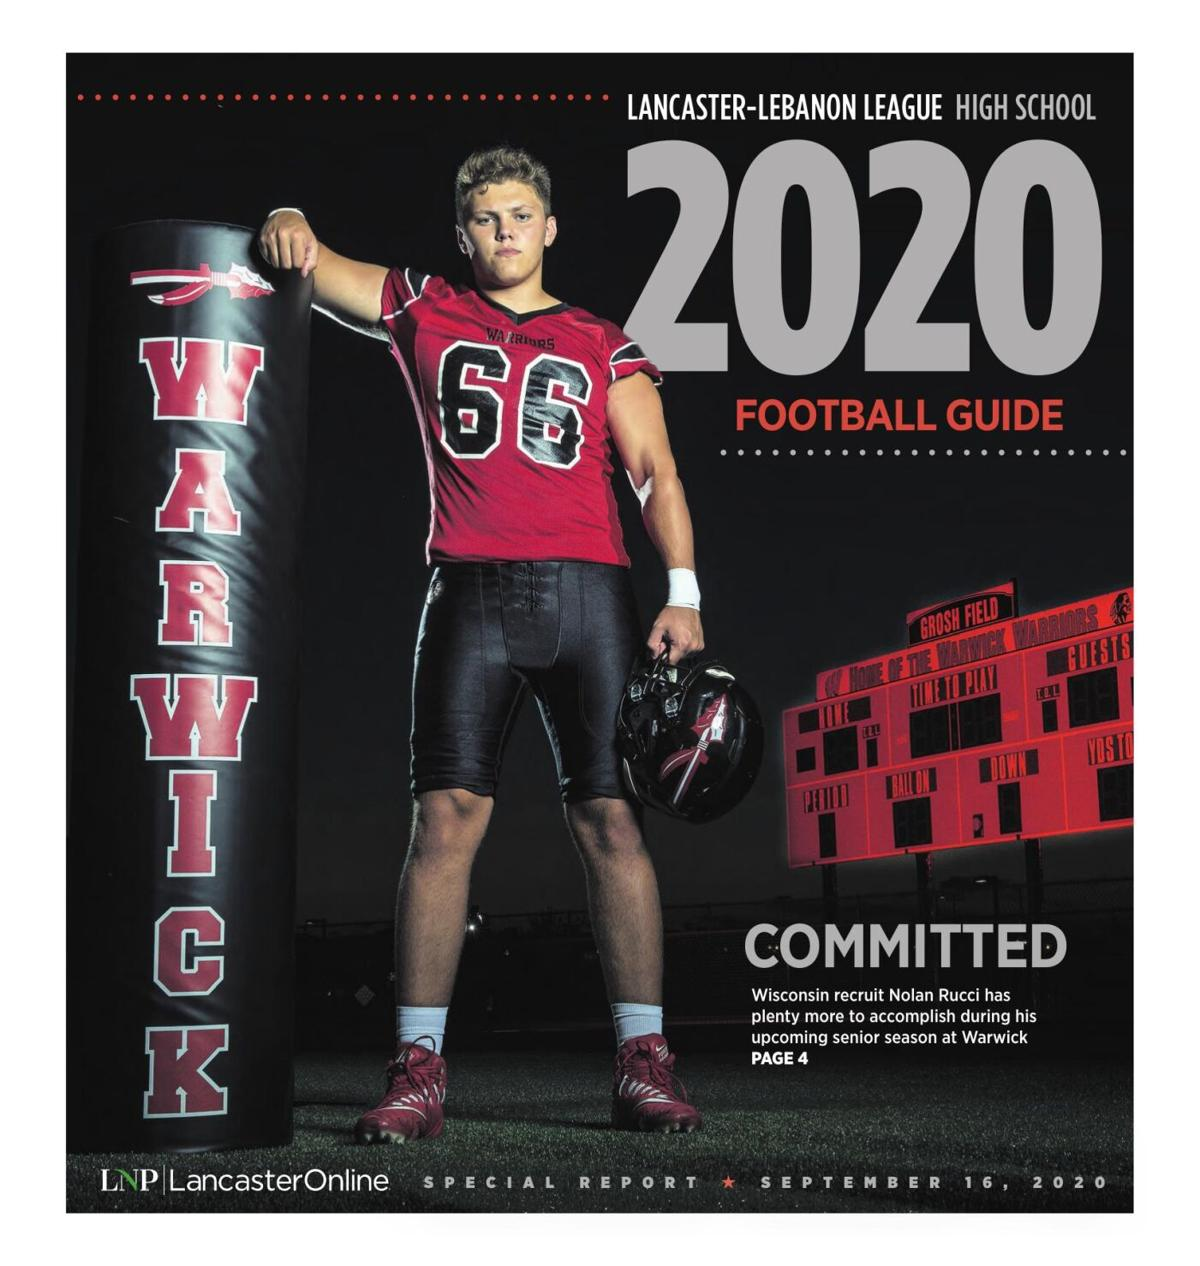 Lancaster-Lebanon League High School Football Guide 2020